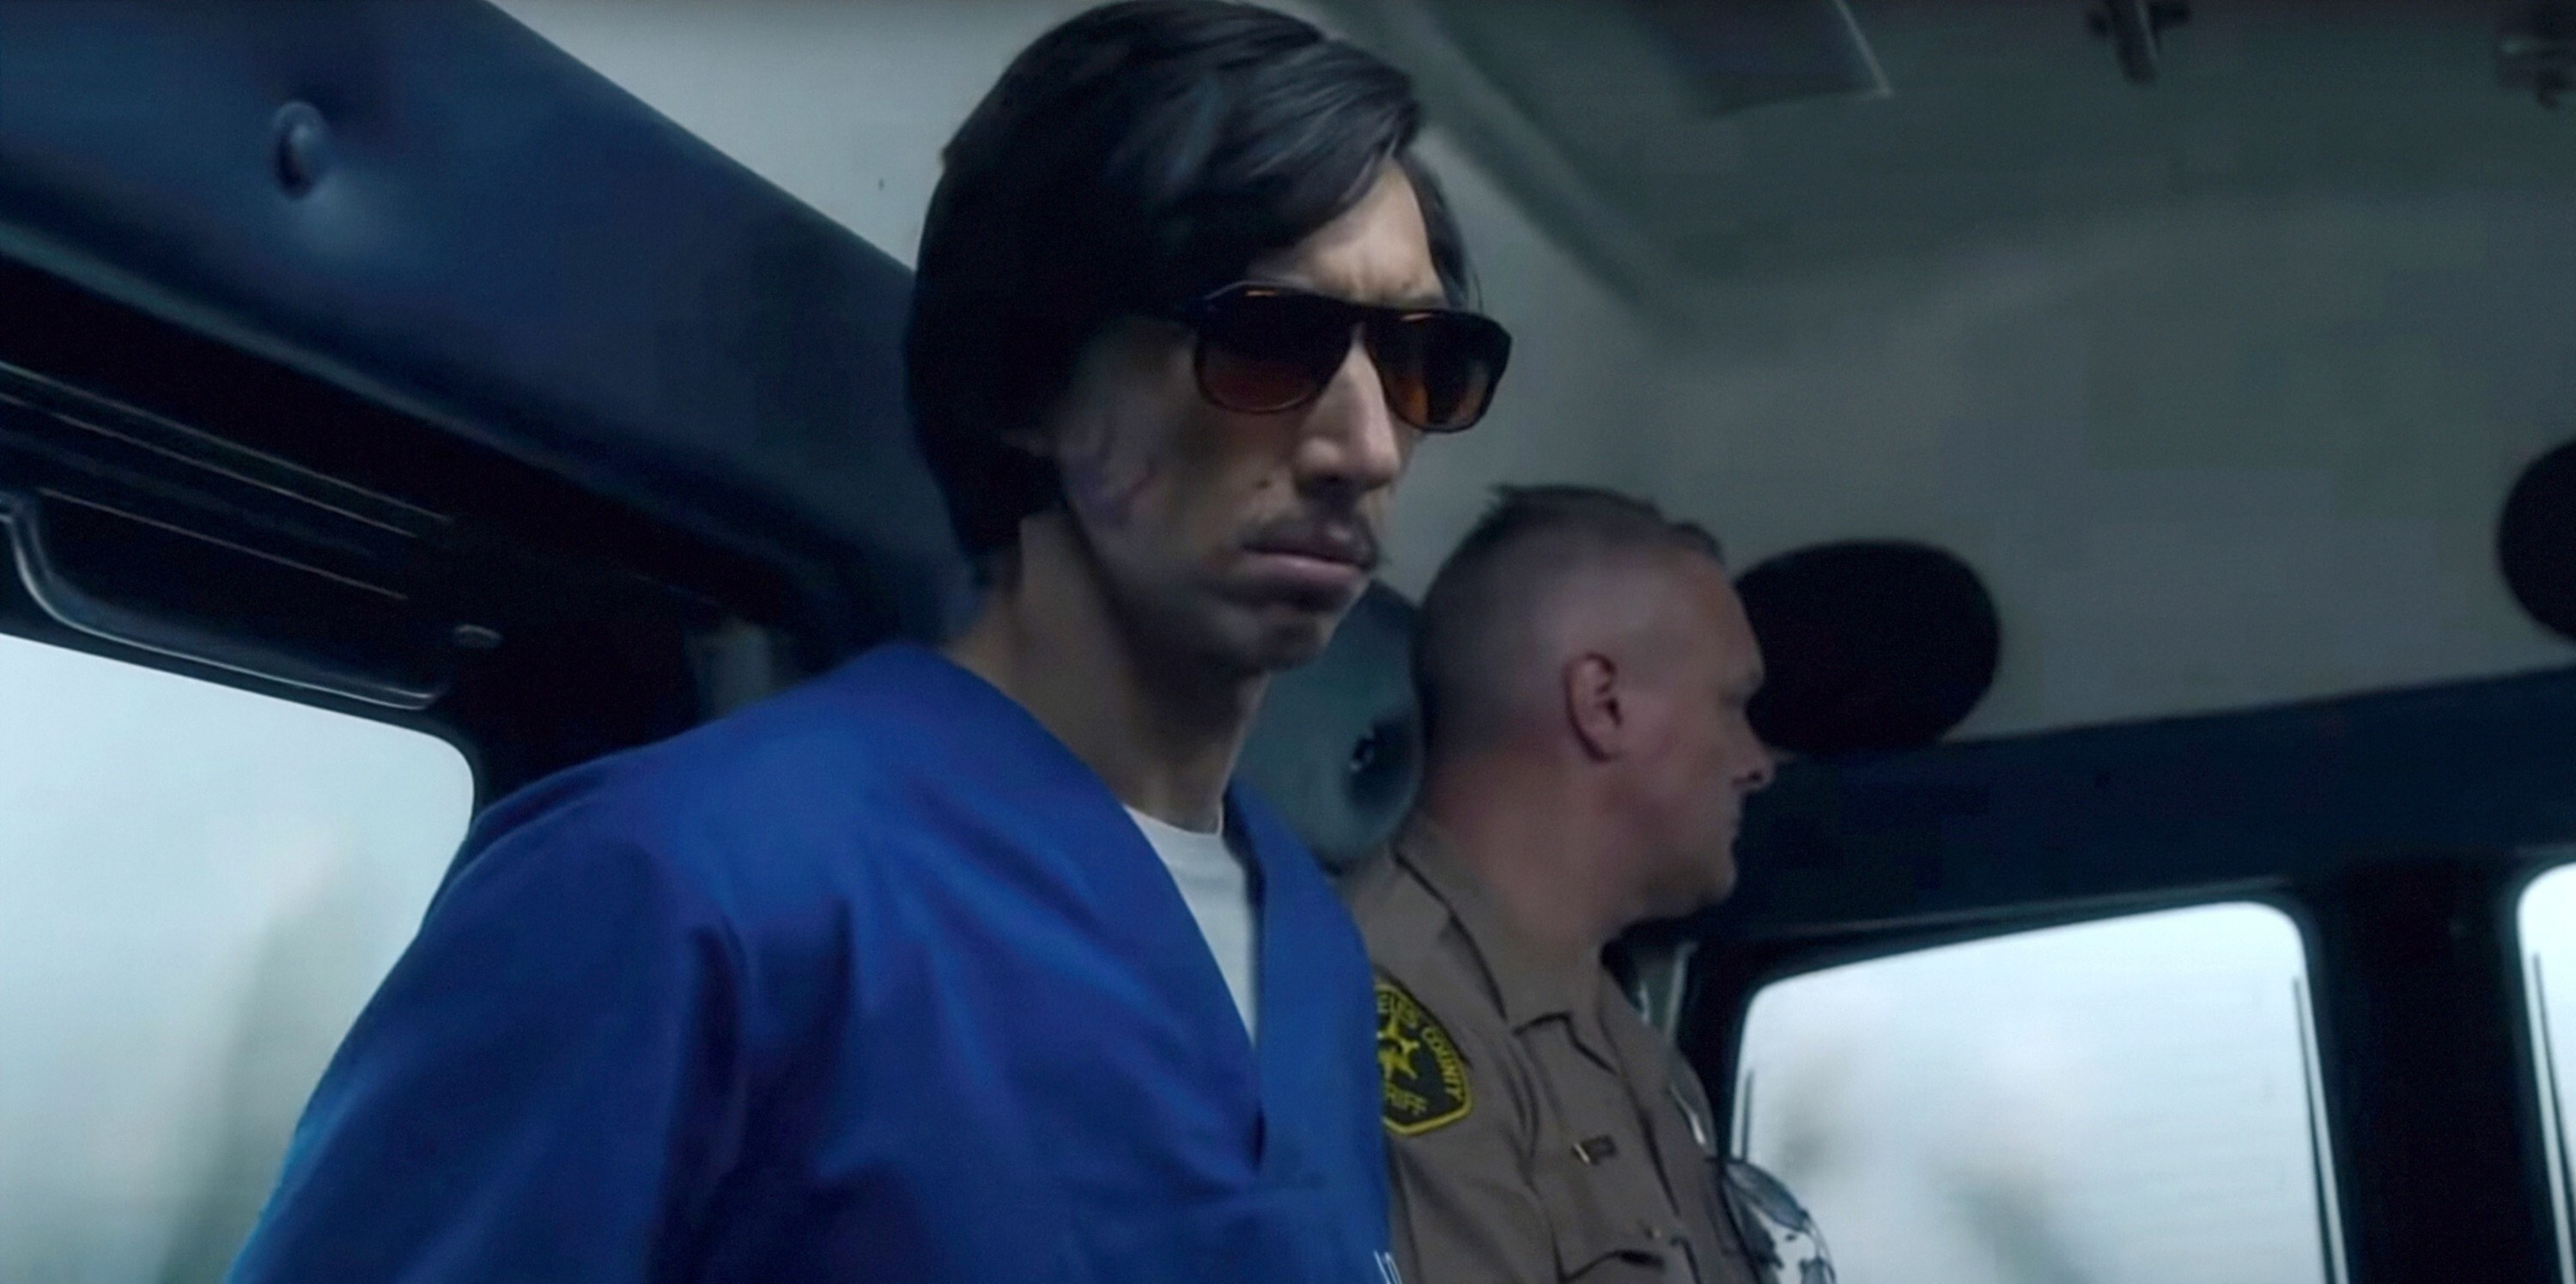 Adam Driver wears sunglasses in the back of a van